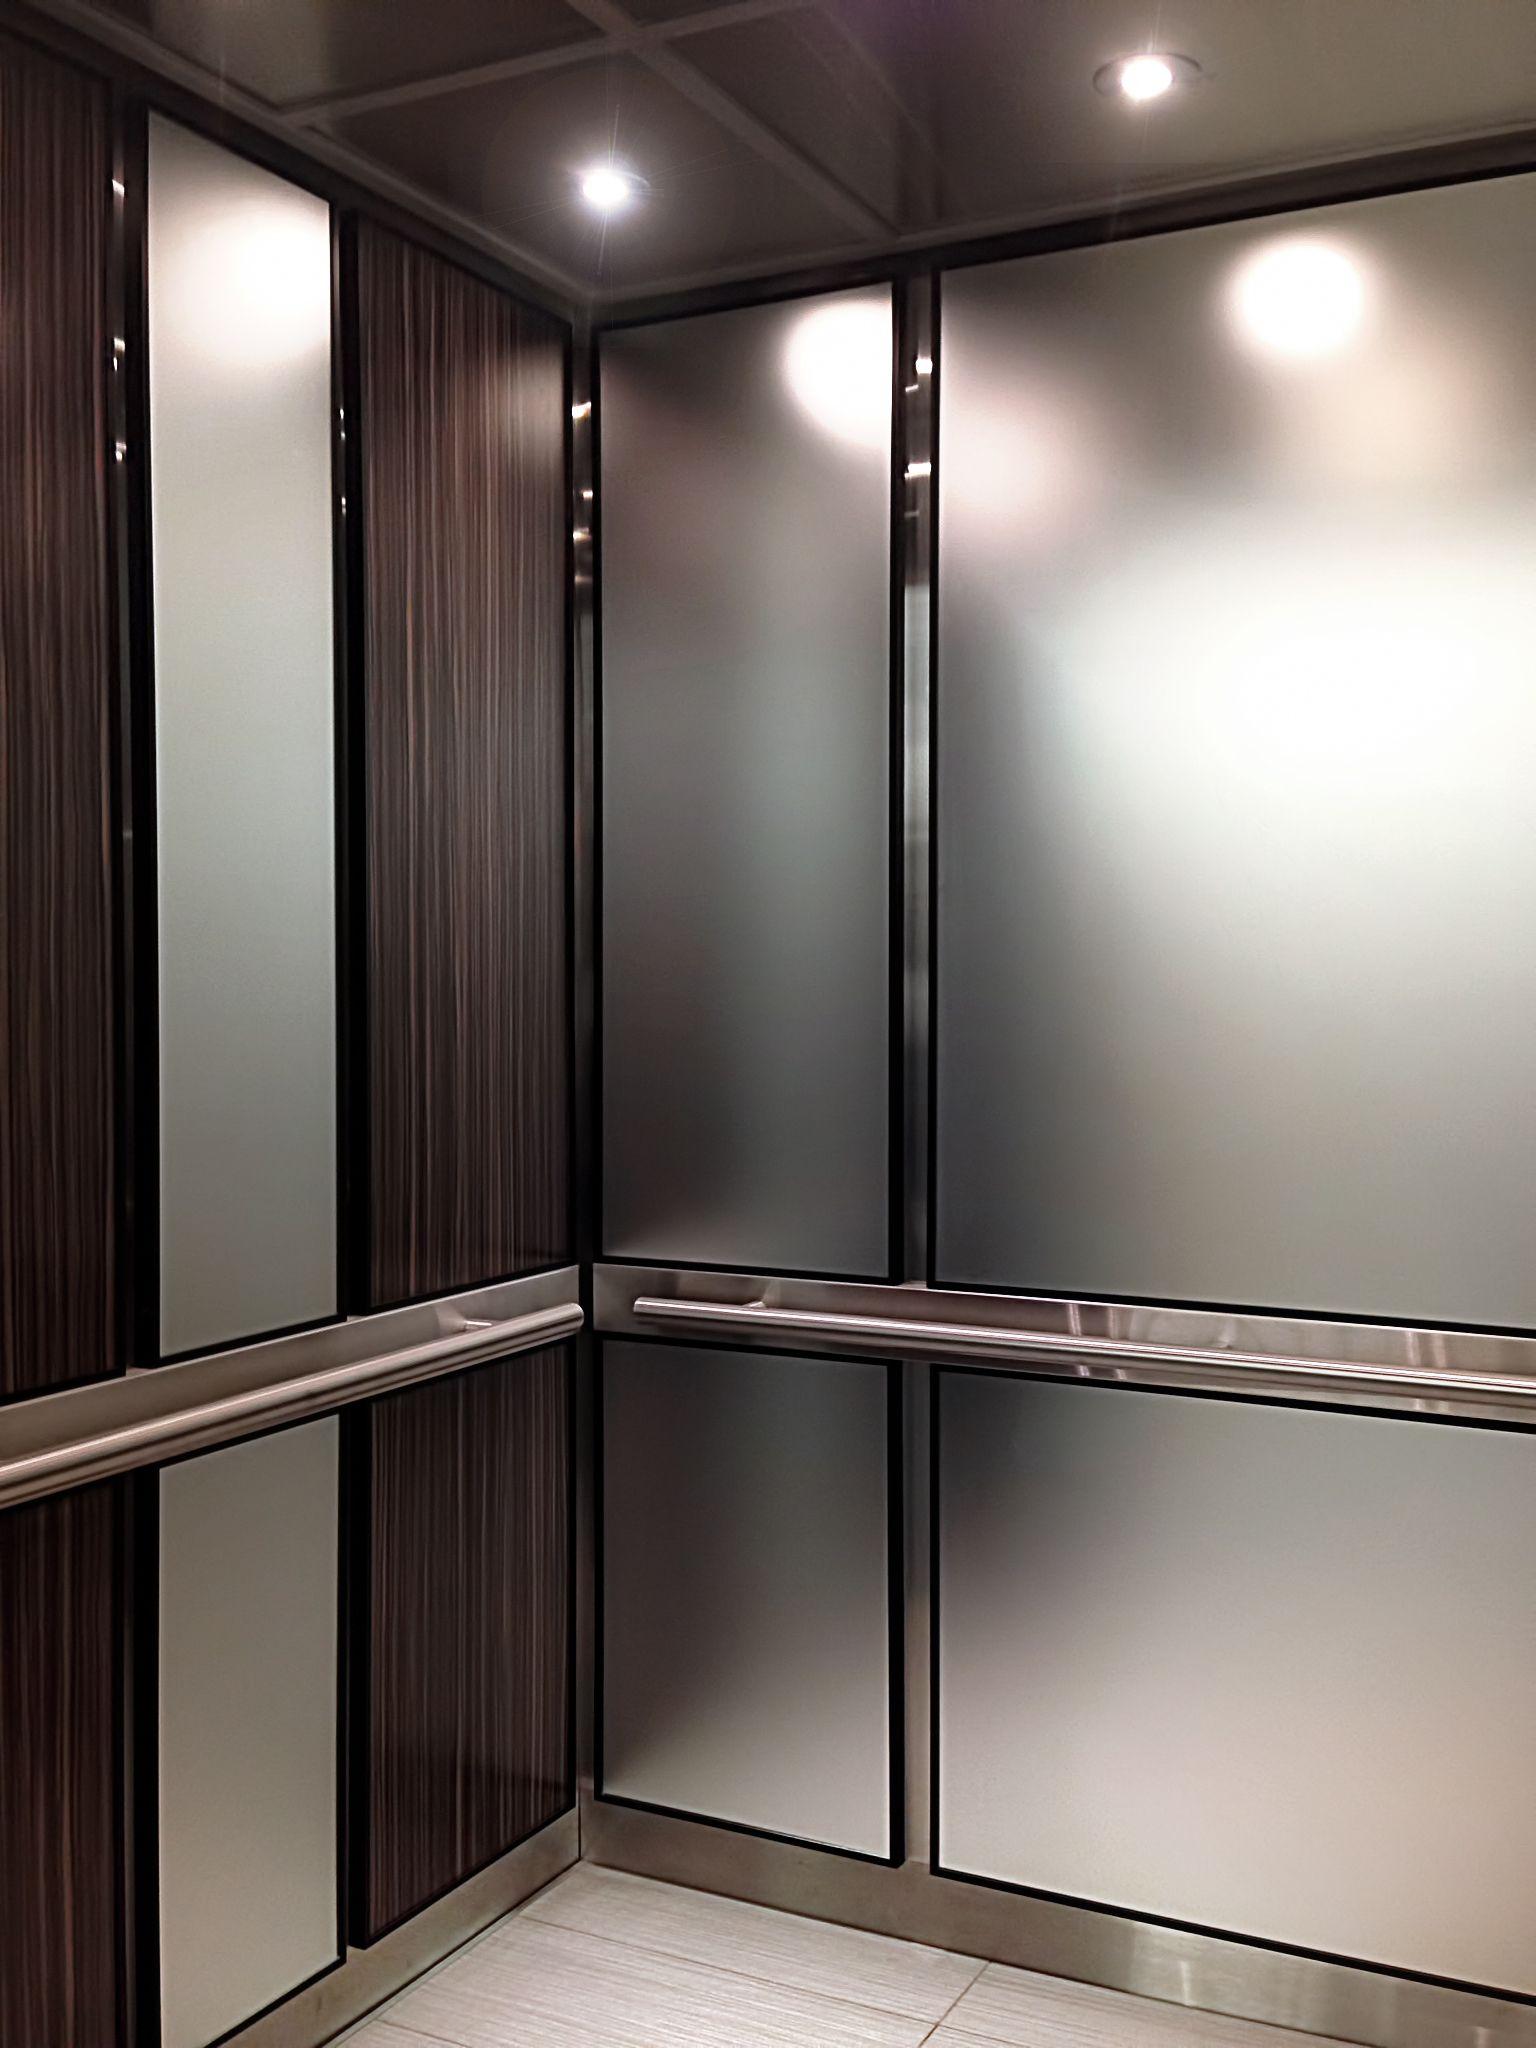 Aqua Frosted Mirror Panels Provide A Smokey Reflection Of The Wide Grain Lacquered Wood Veneer Panels Creating Elevator Interior Elevator Design Frosted Mirror